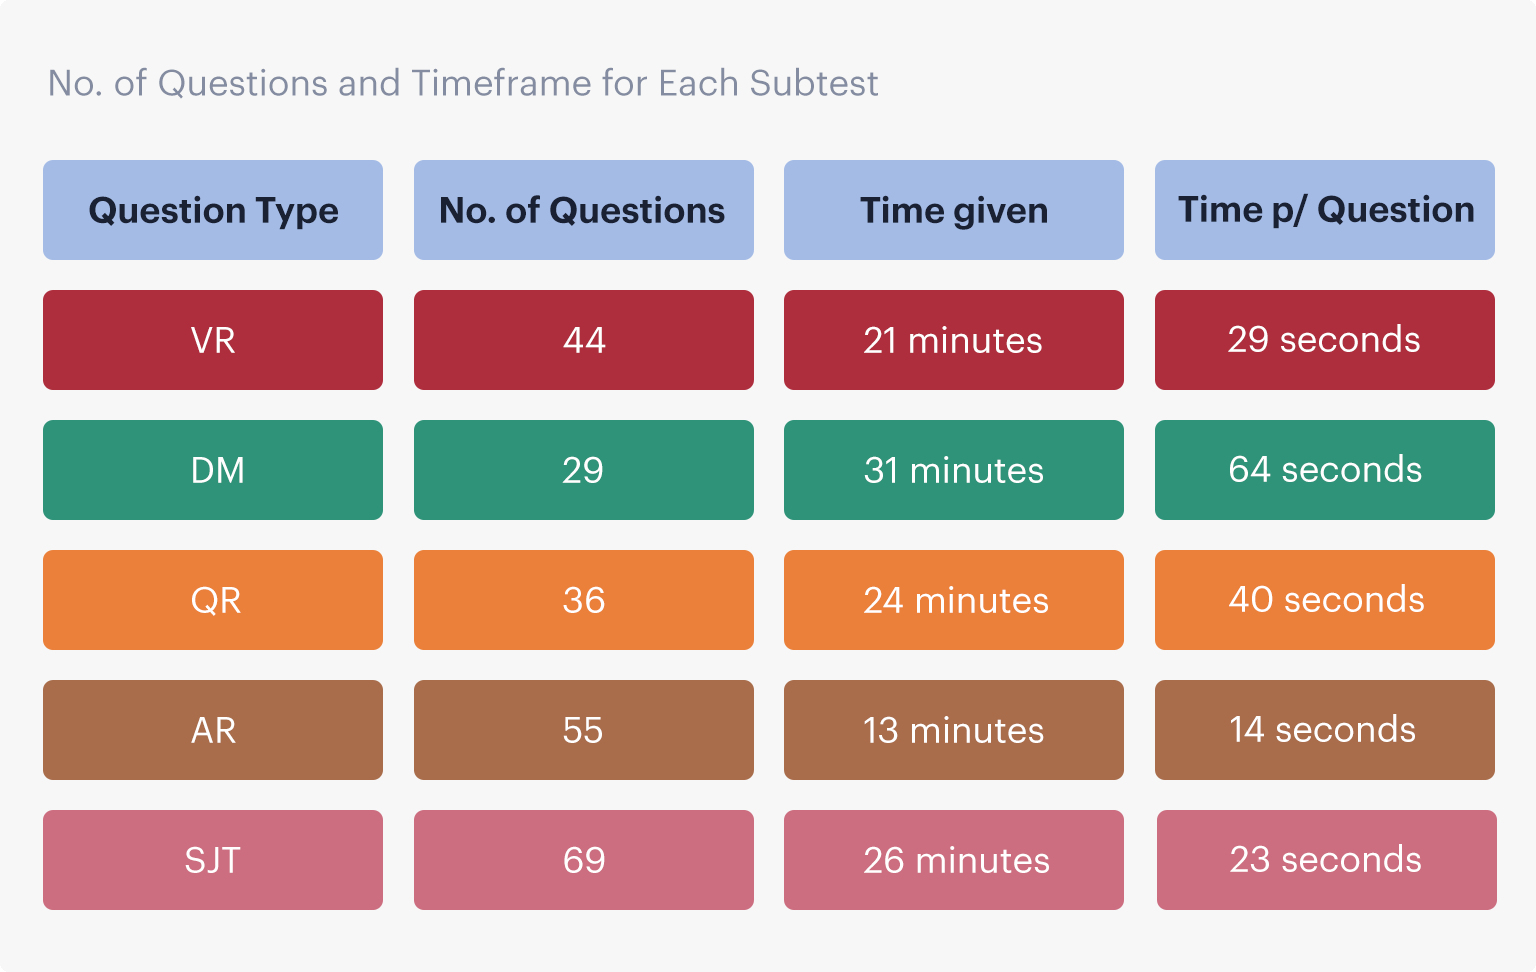 A table showing the number of questions and time given for each subtest of the UCAT